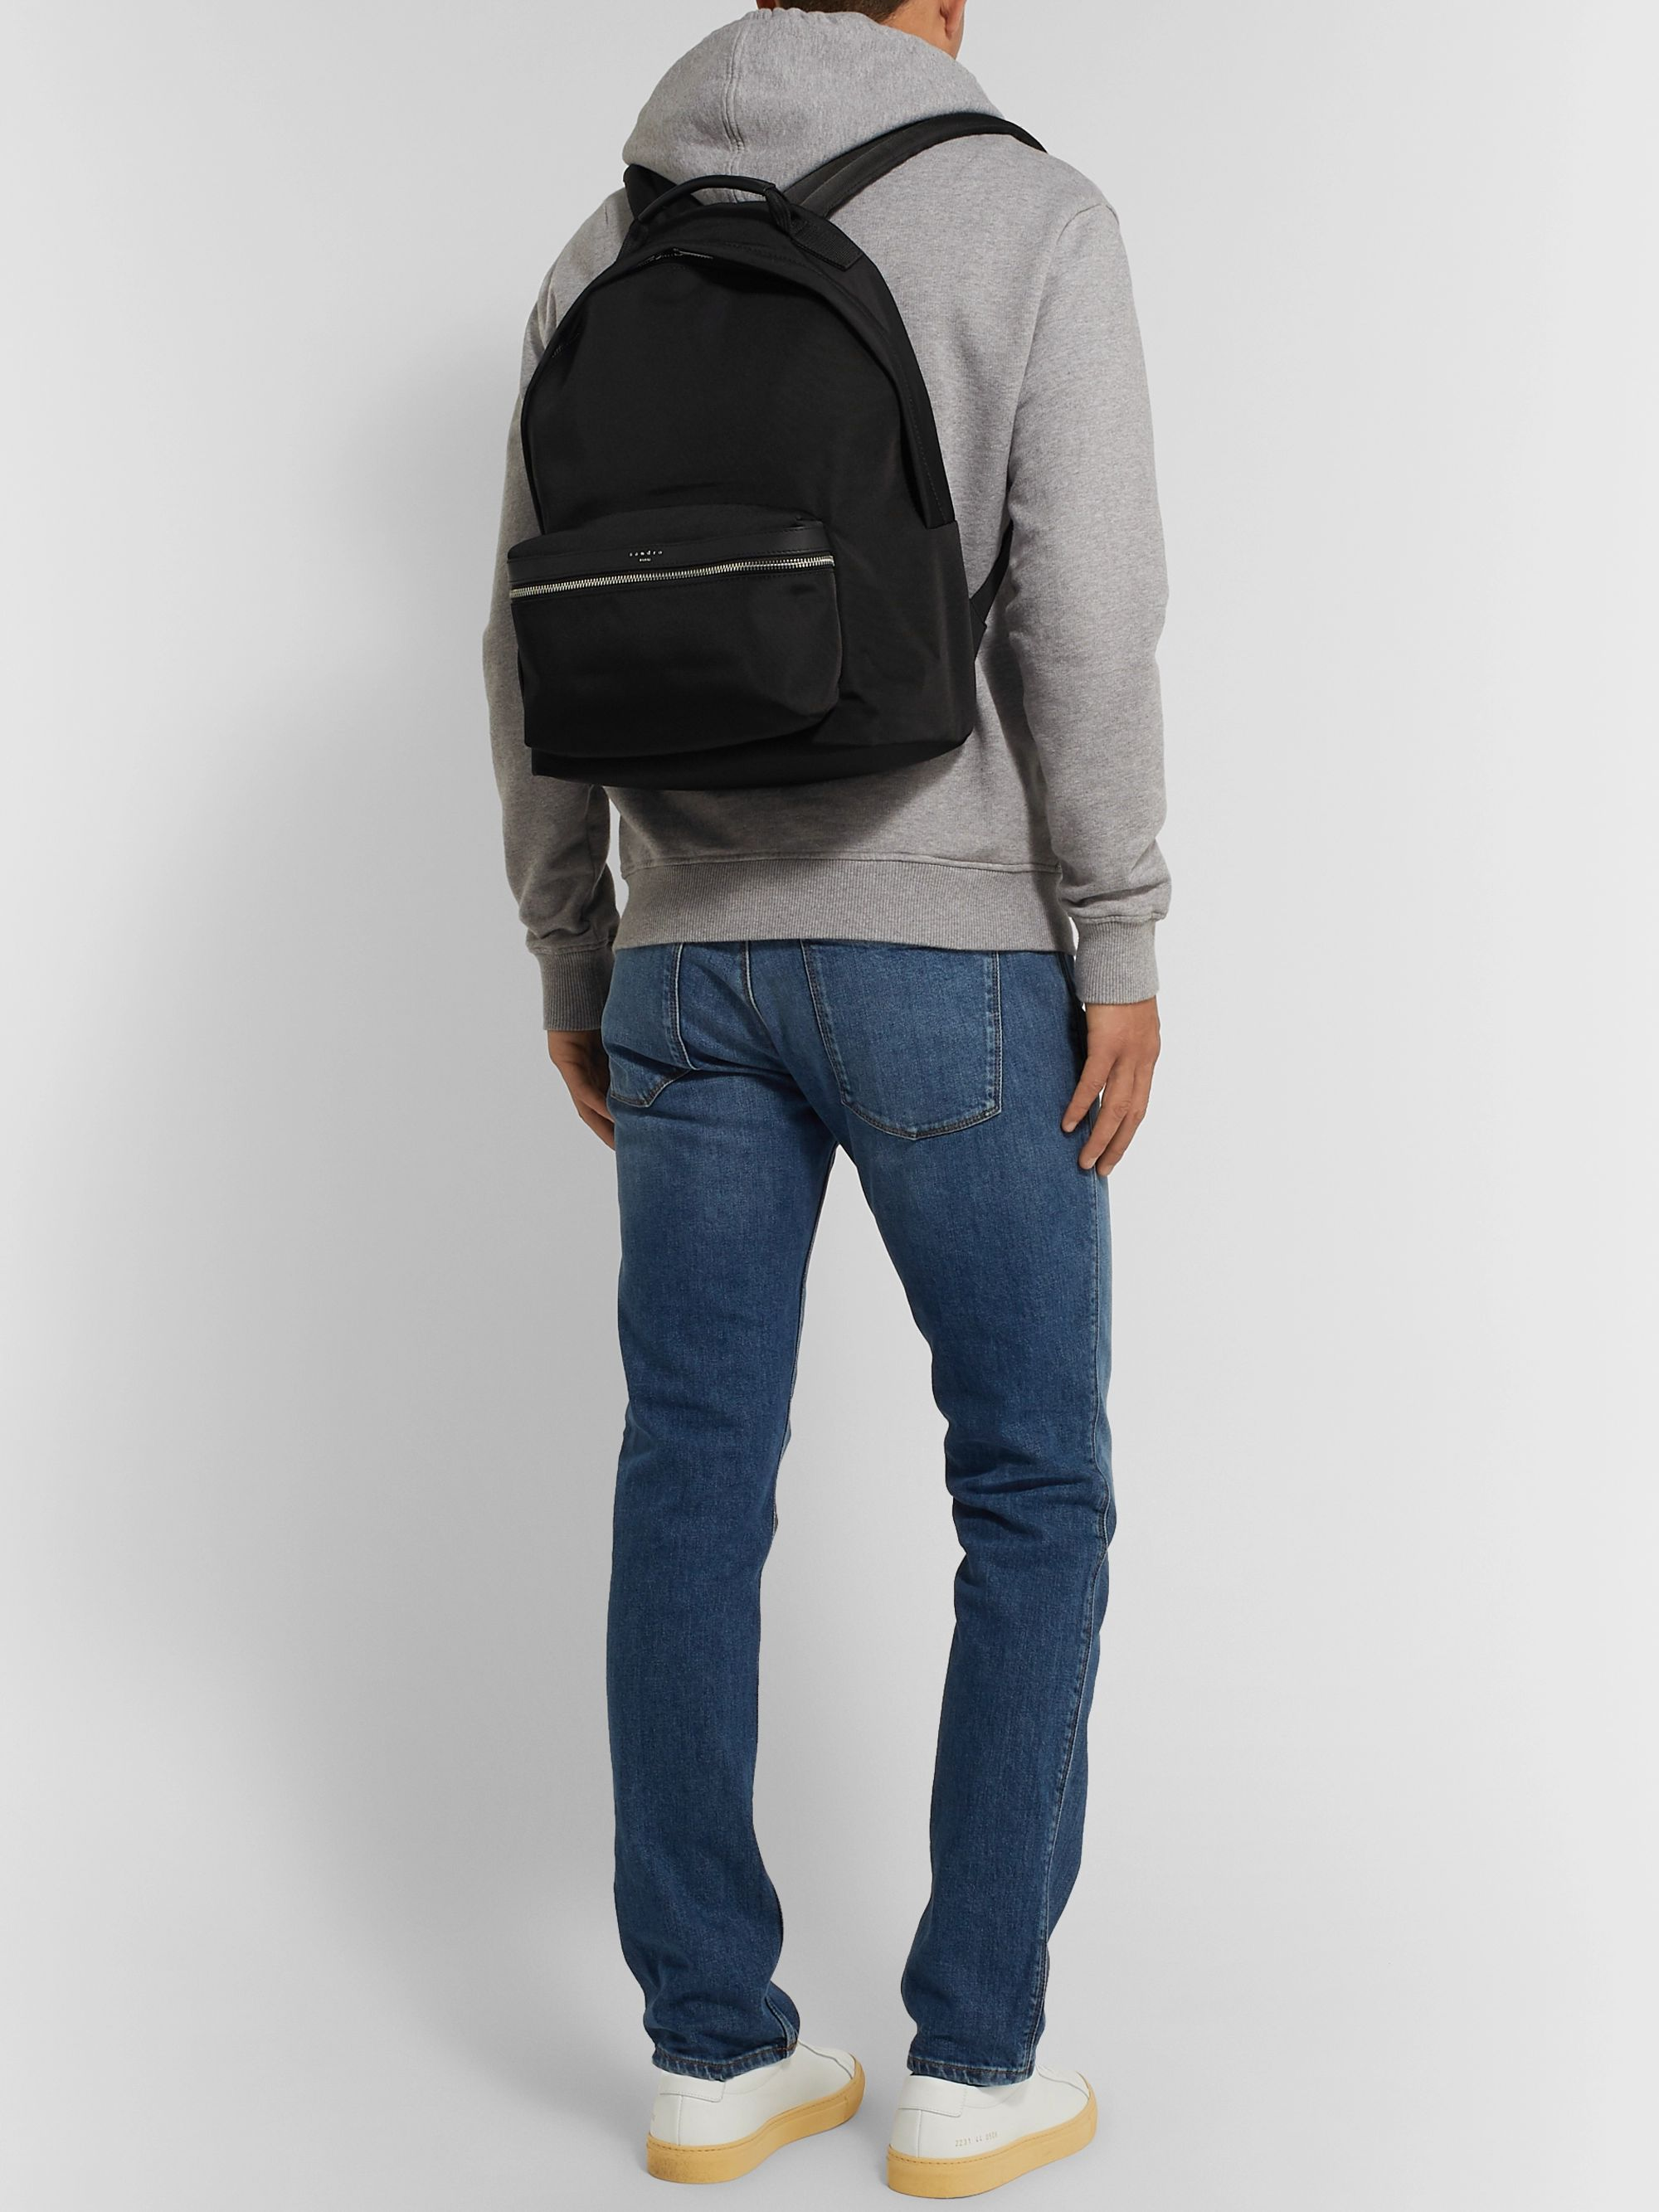 Sandro Leather-Trimmed Ballistic Nylon Backpack